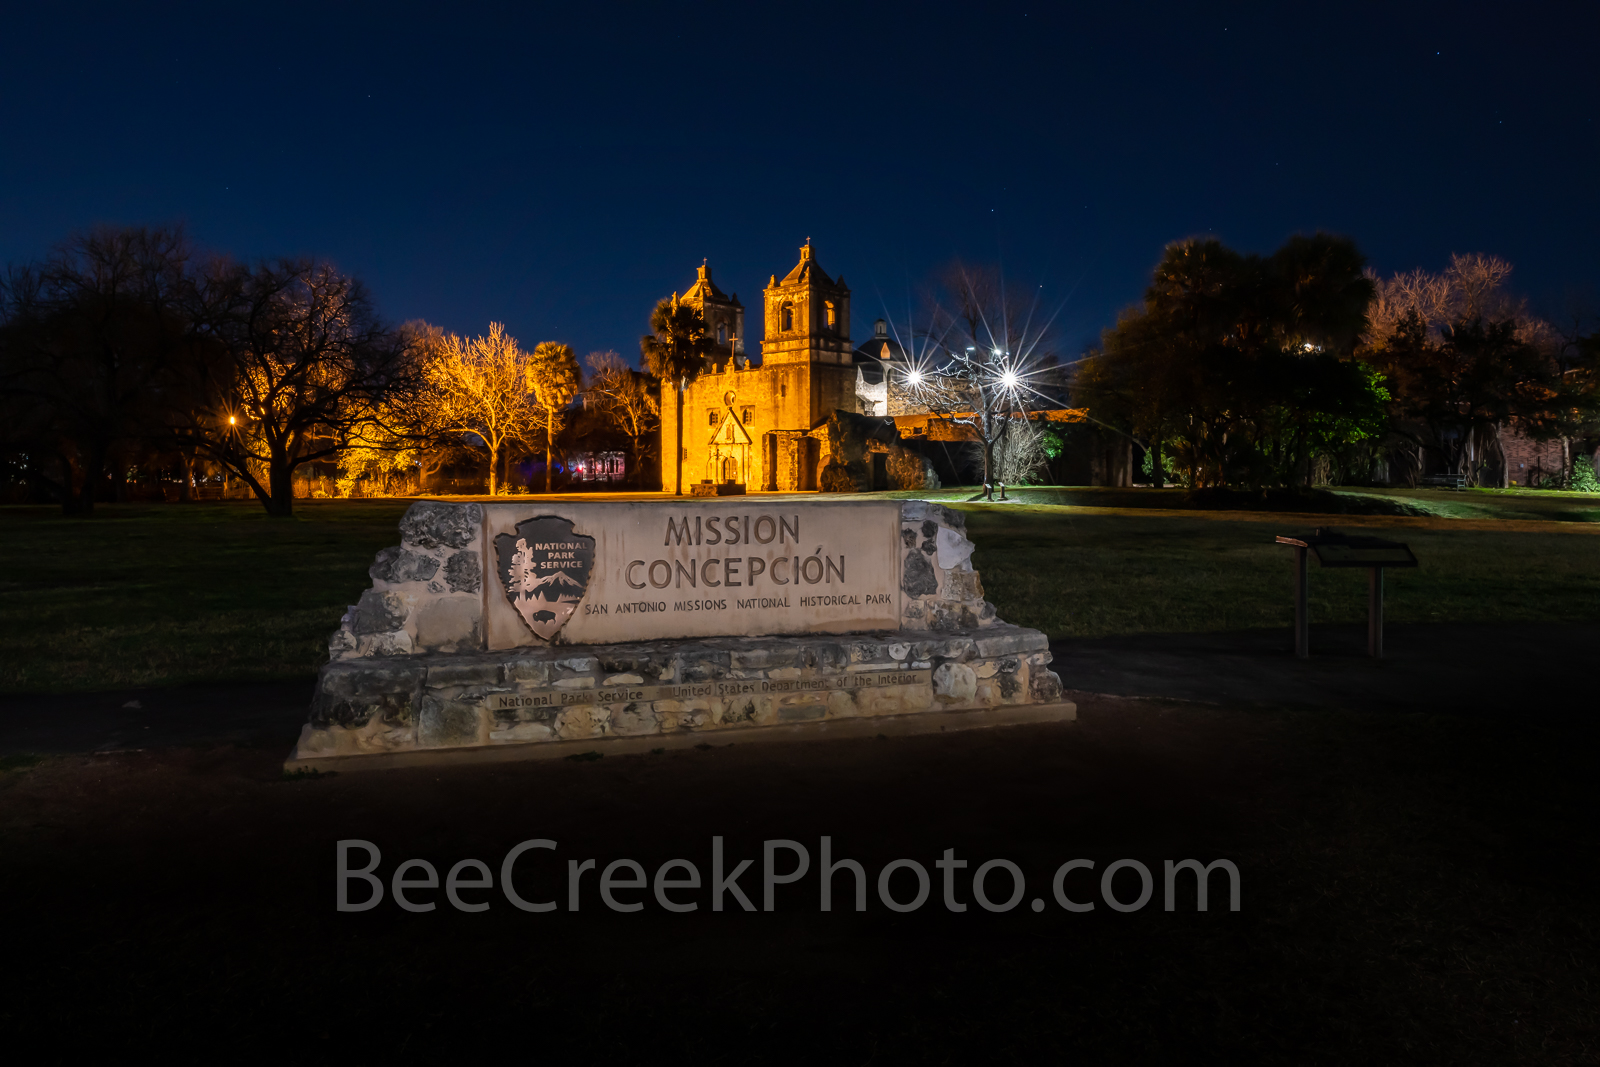 Concepción, Mission Concepción, San Antonio, night, spanish missions, indians, landmark, historic, downtown, skies, texians, mexicans, Texas missions, National Historic Landmarks, world heritage site,, photo